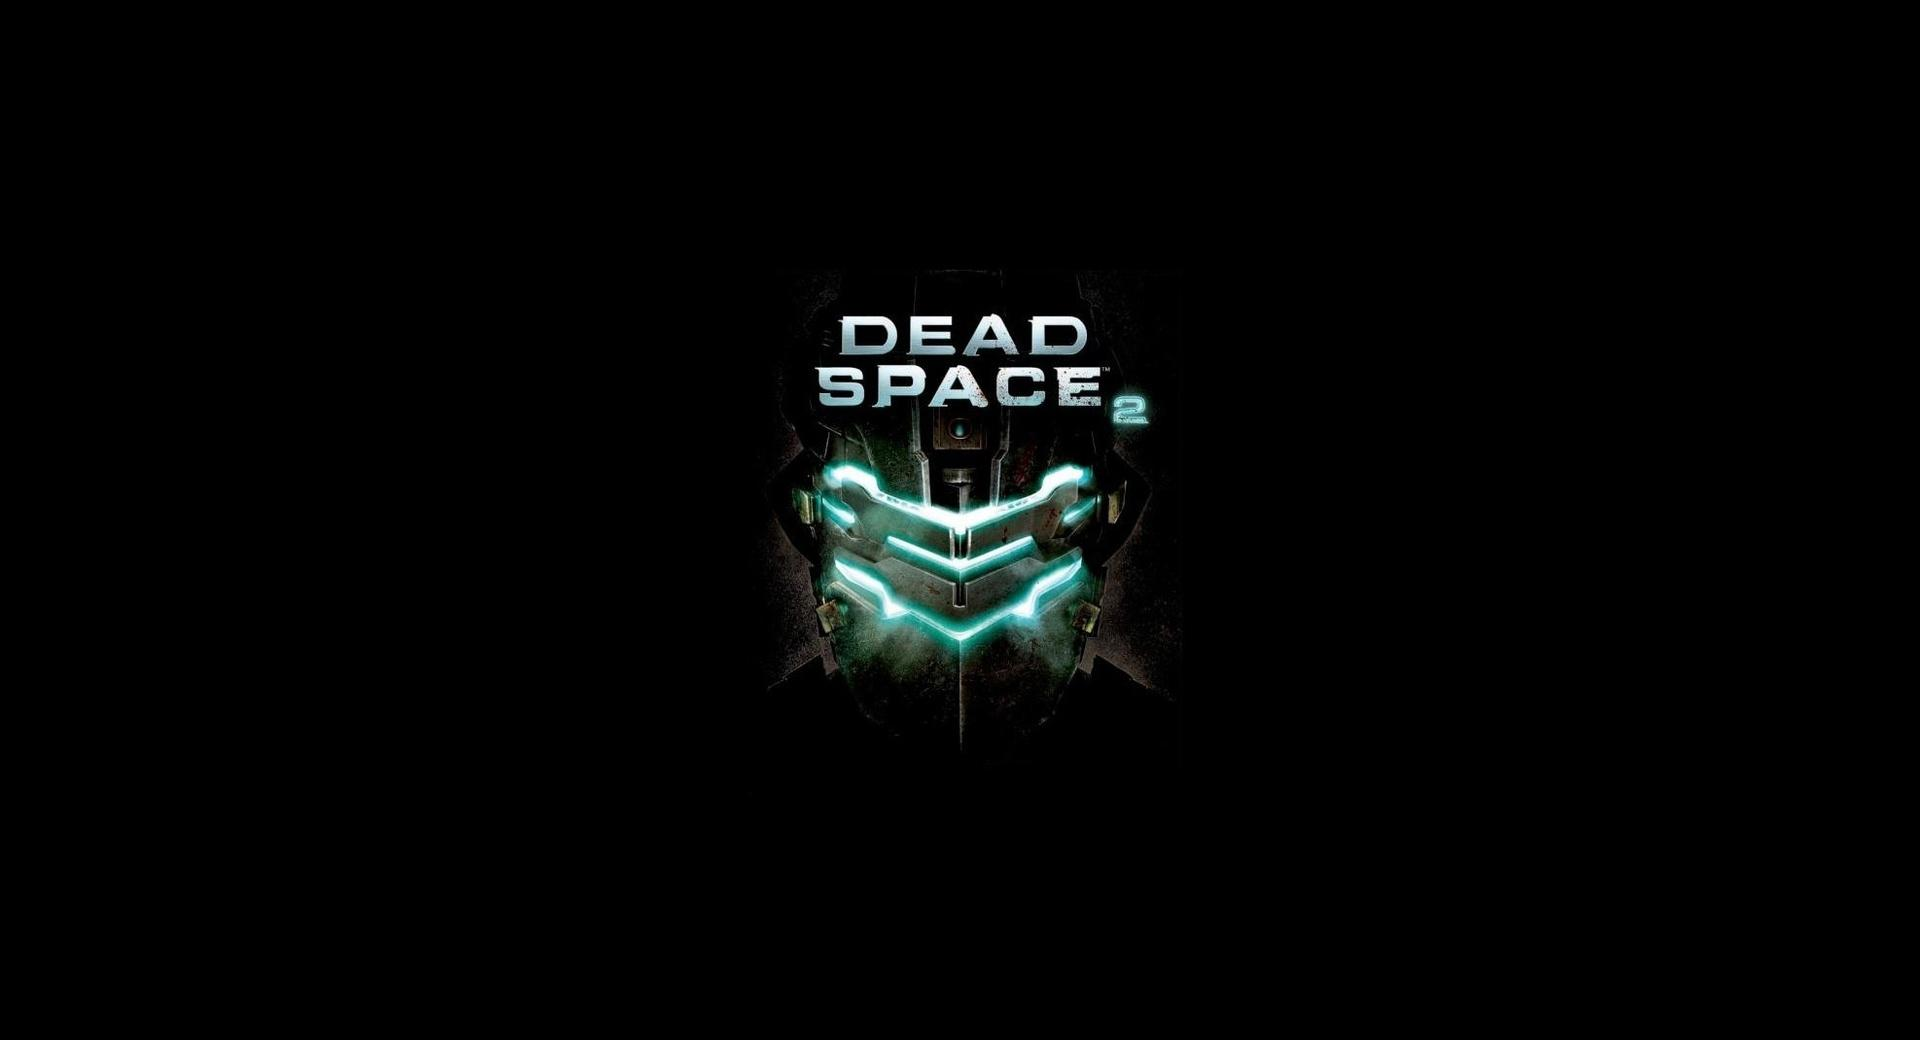 Dead Space 2 Mask wallpapers HD quality